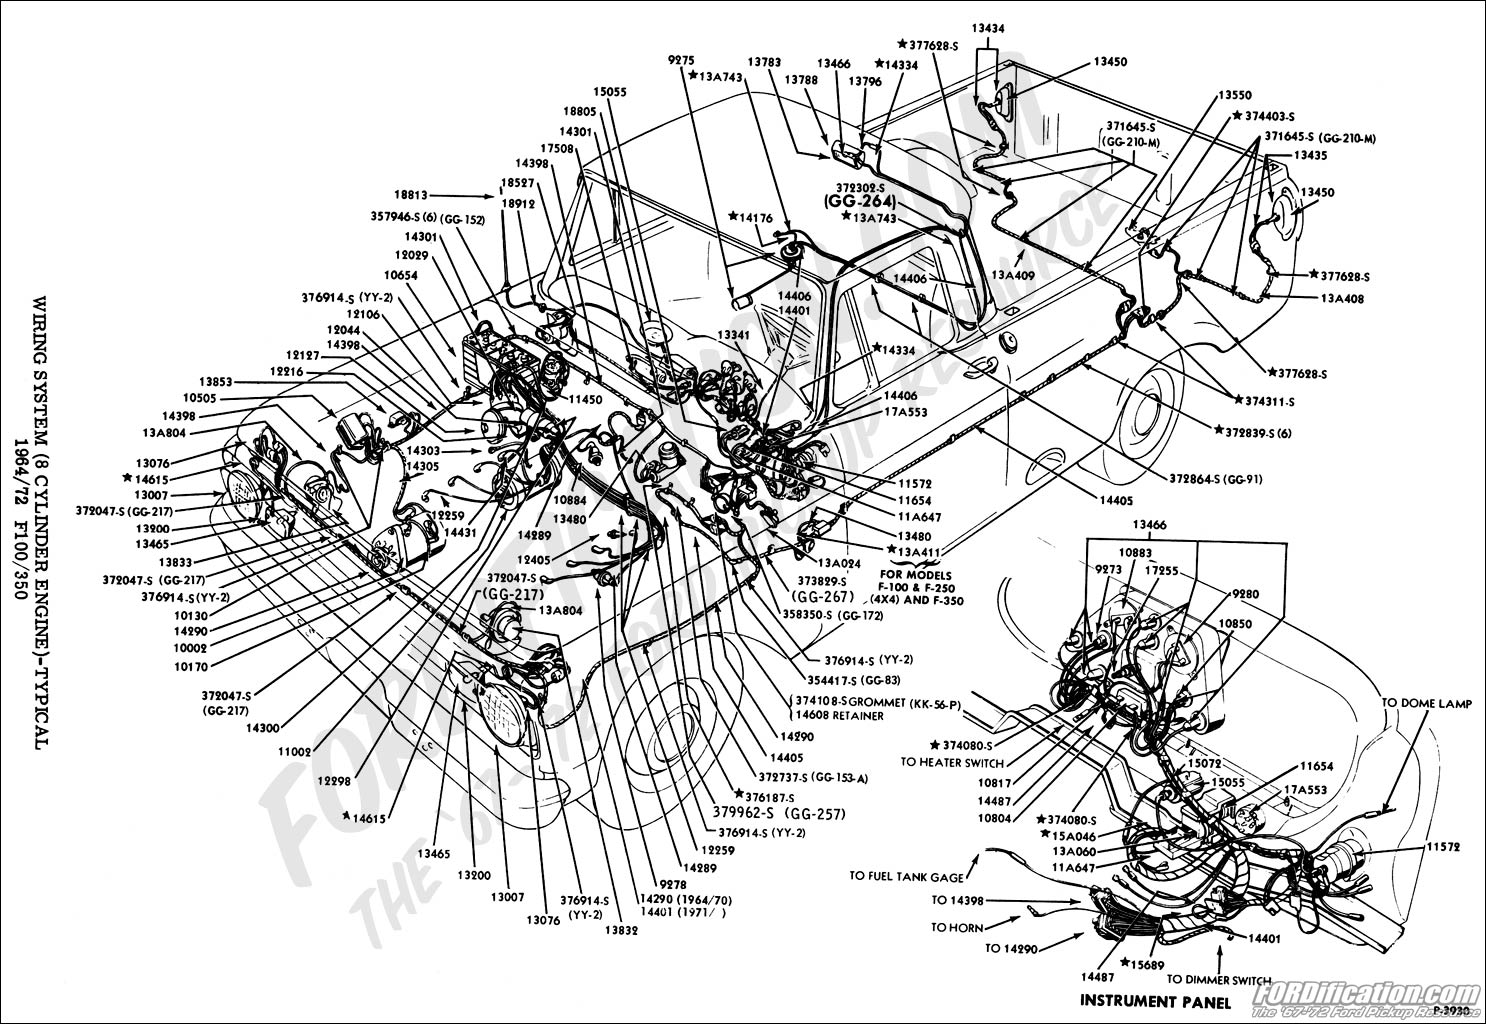 1963 ford f100 wiring diagram 220 volt plug truck technical drawings and schematics section i